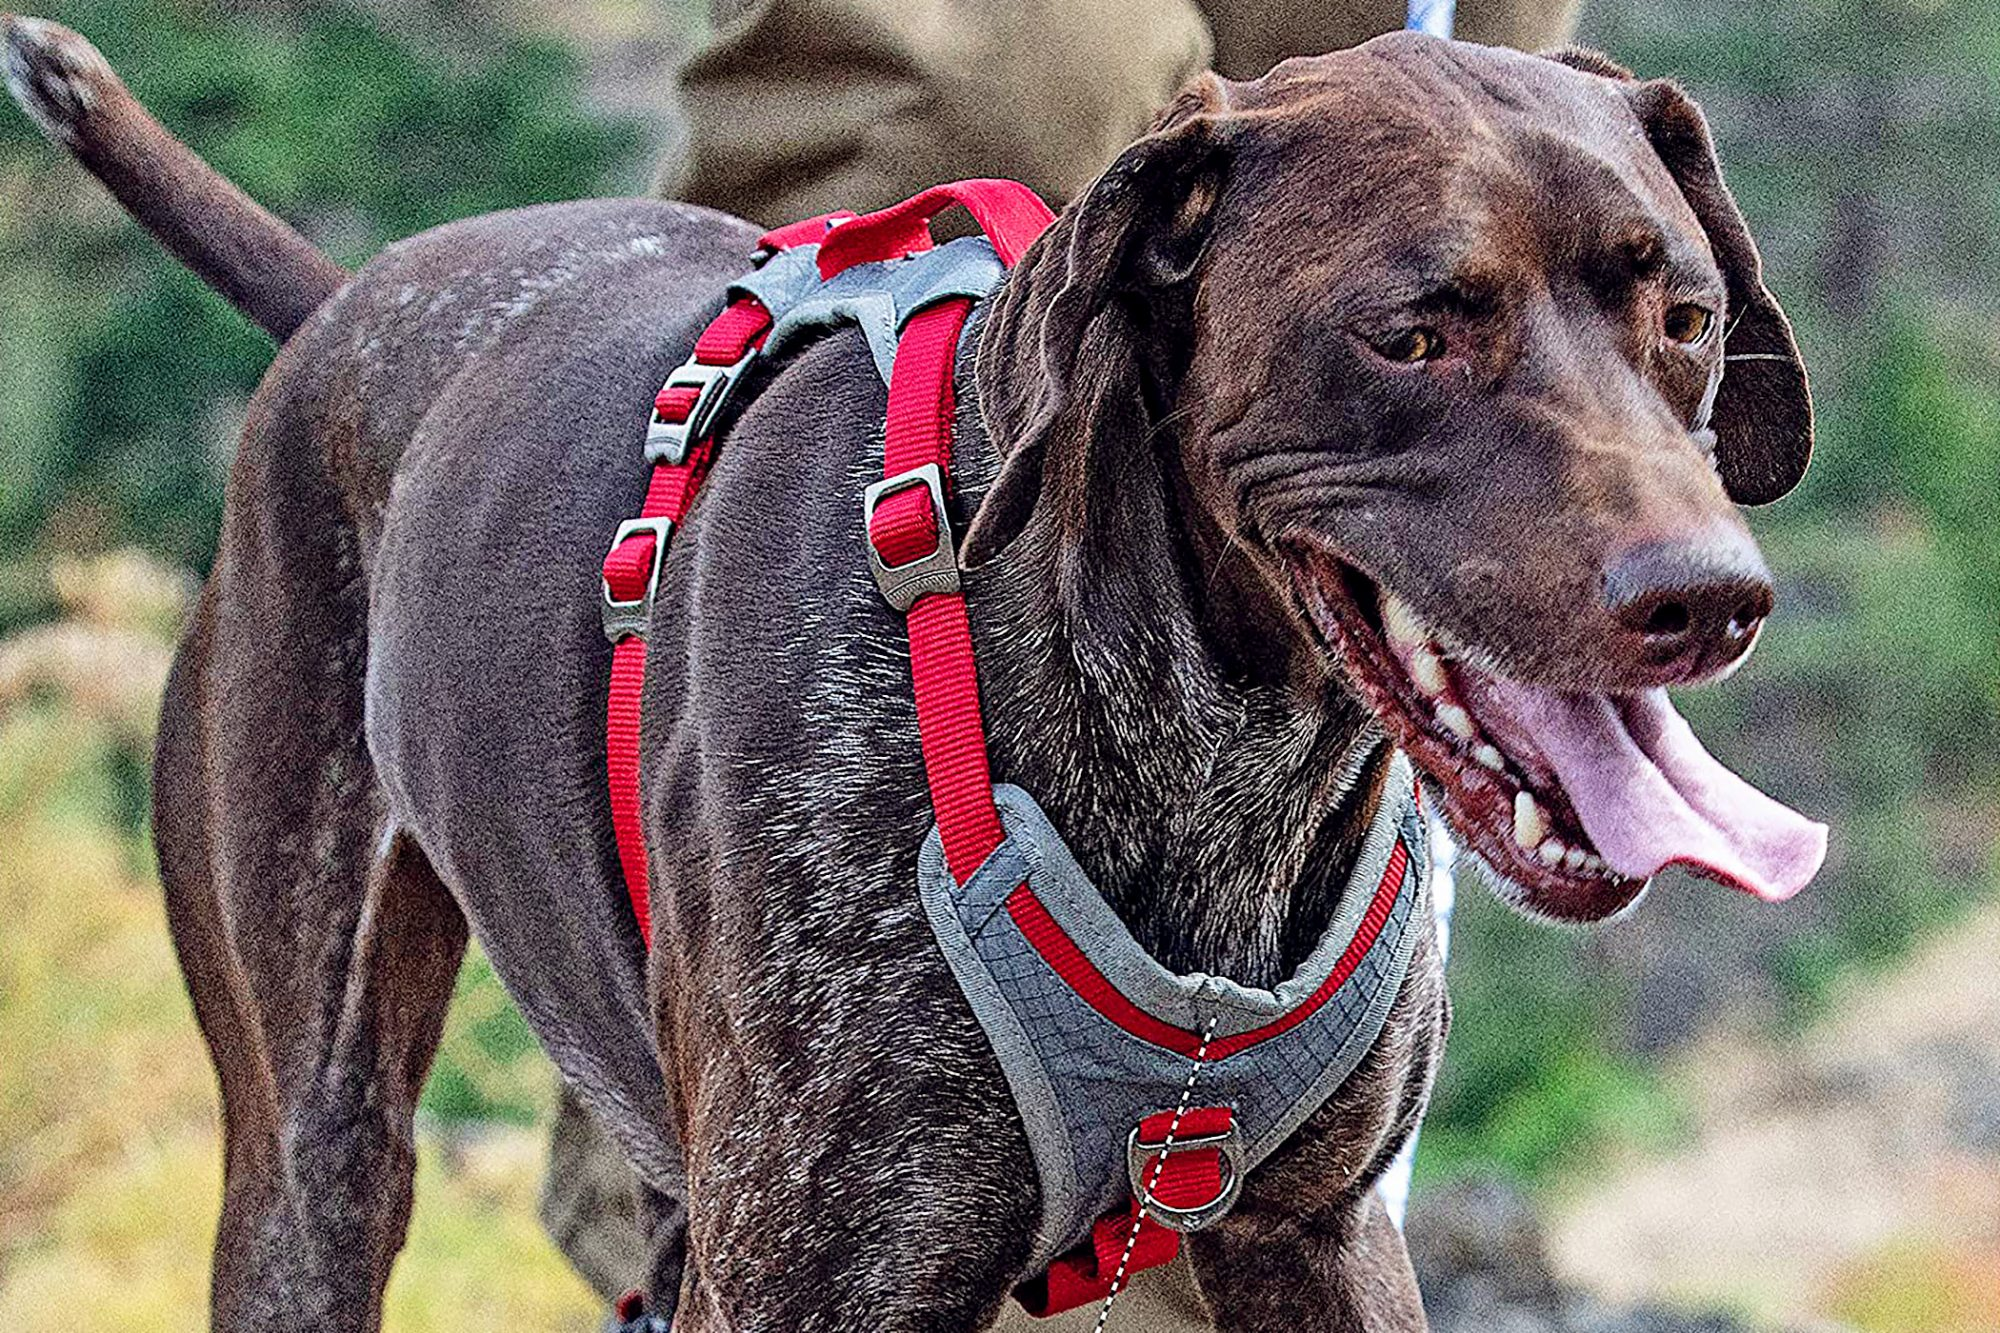 dog wearing red harness